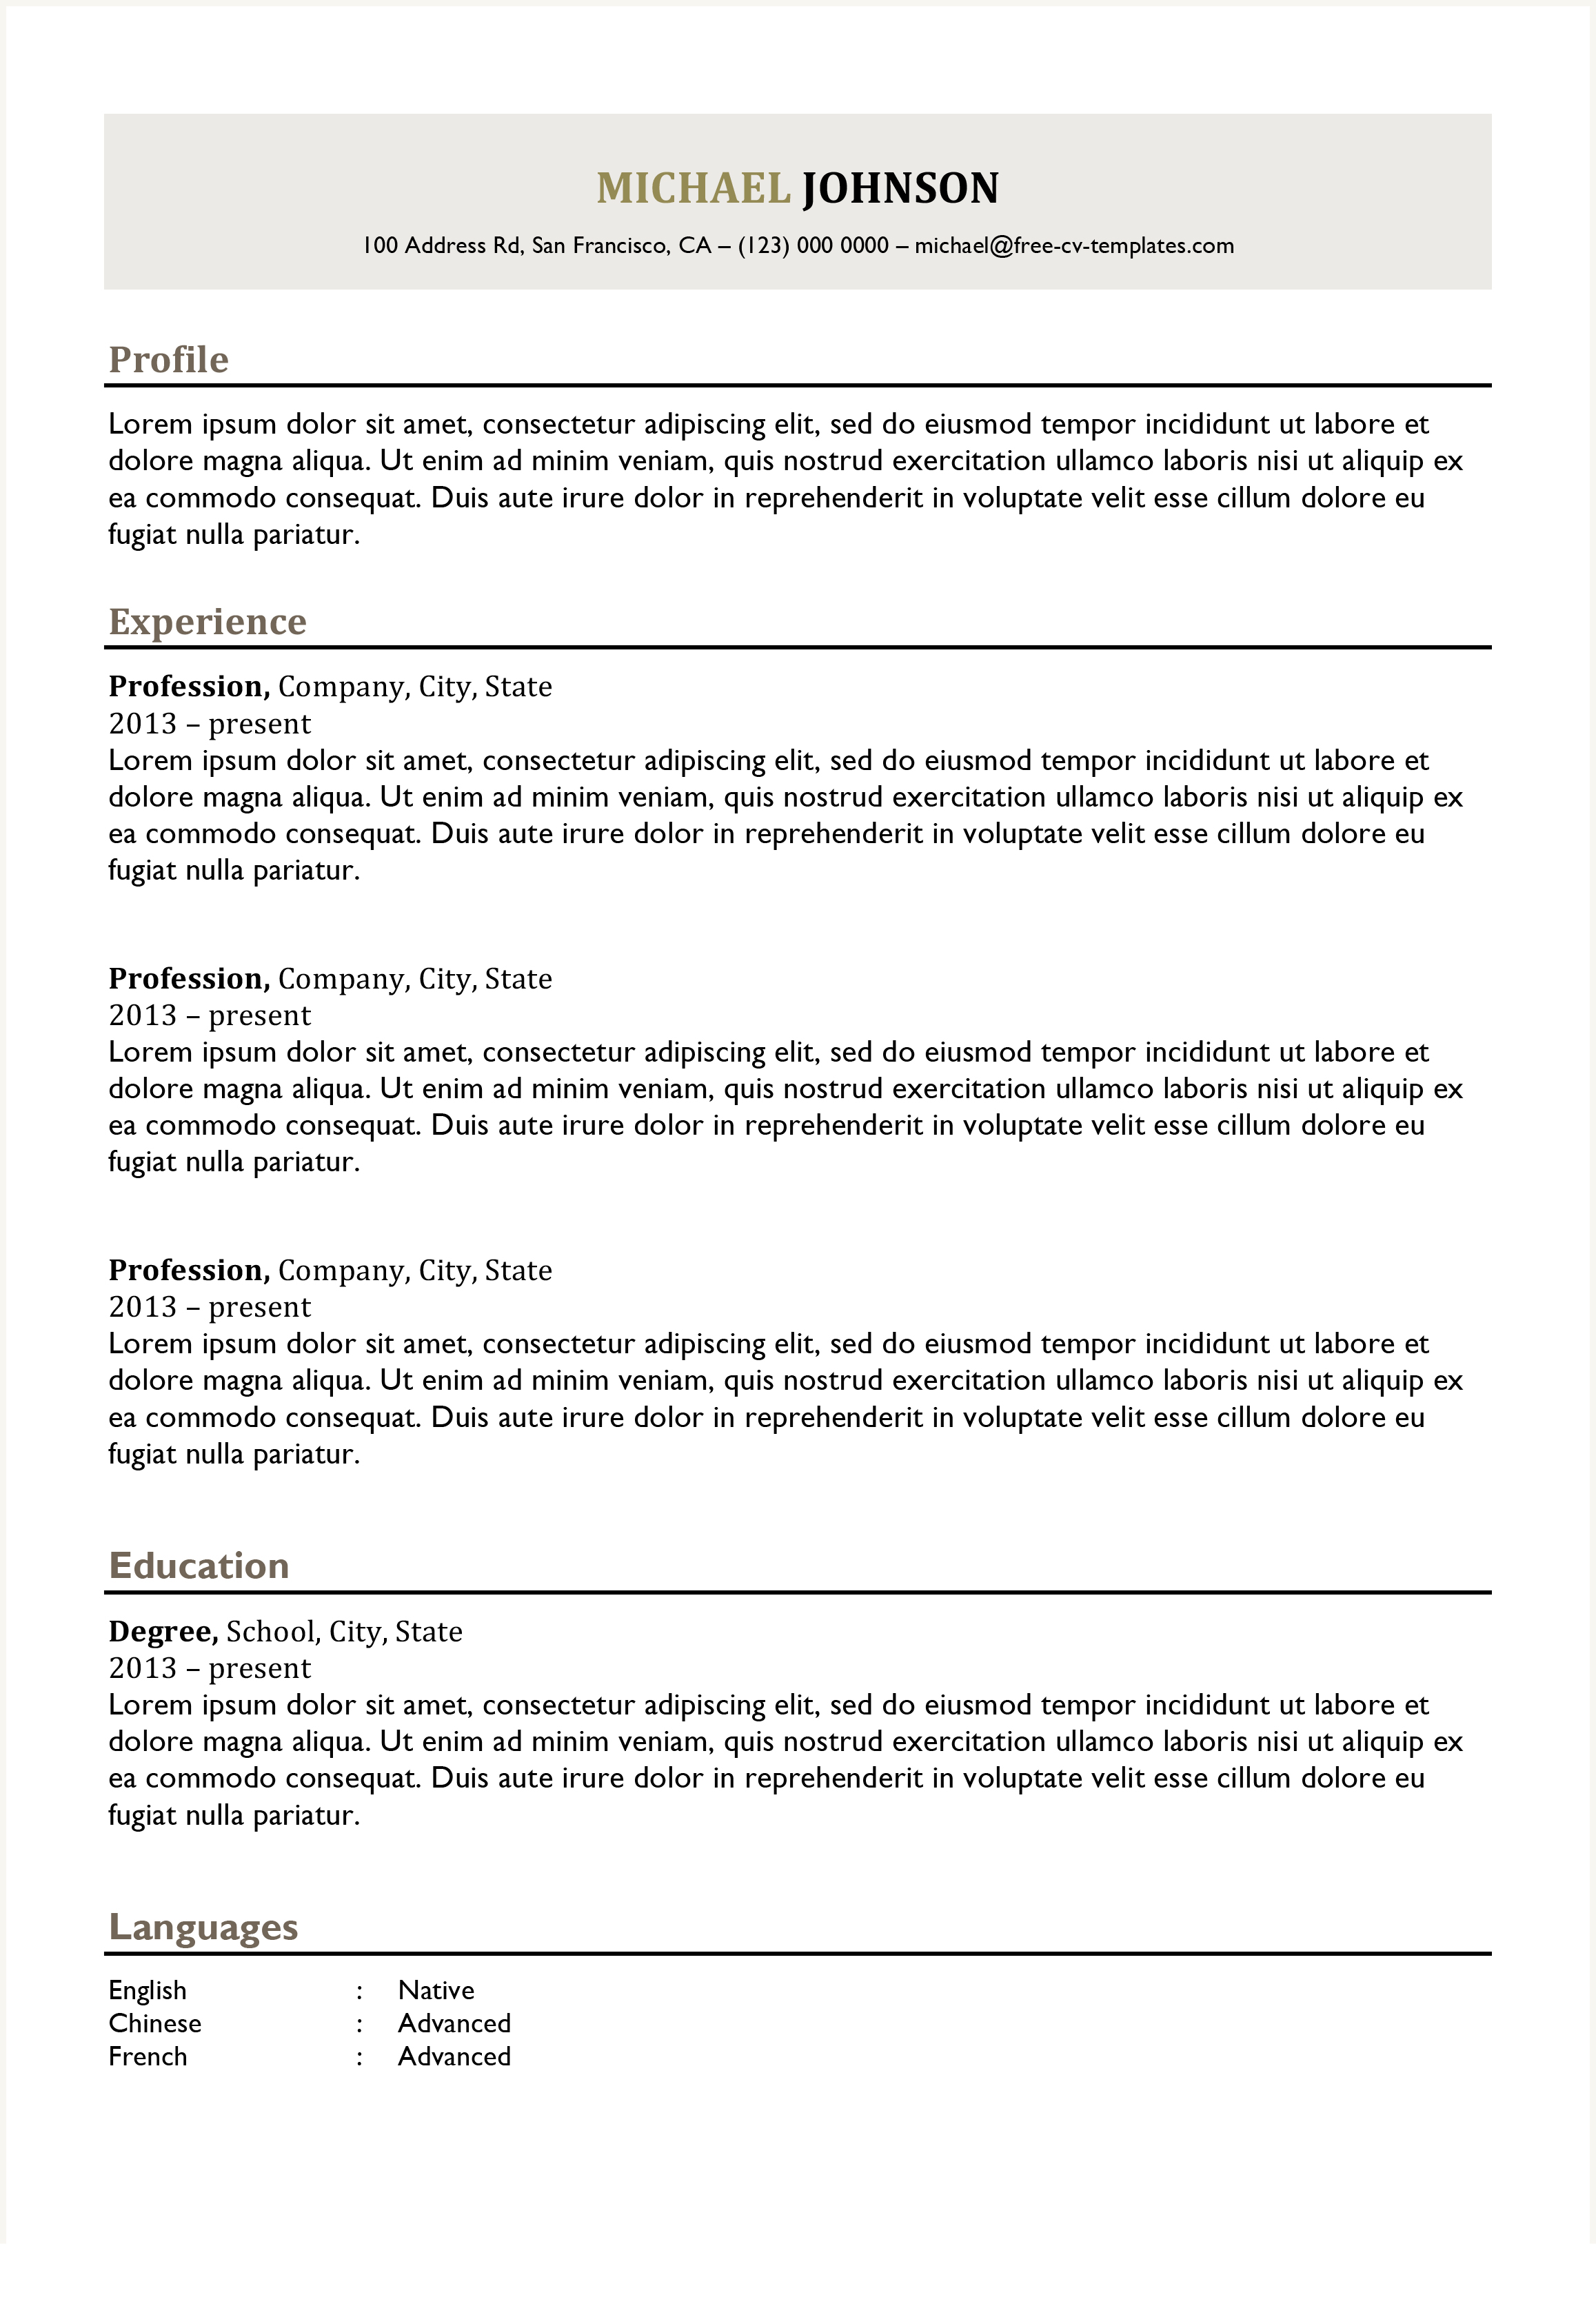 Traditional CV Templates | Land the job with our free Word ...